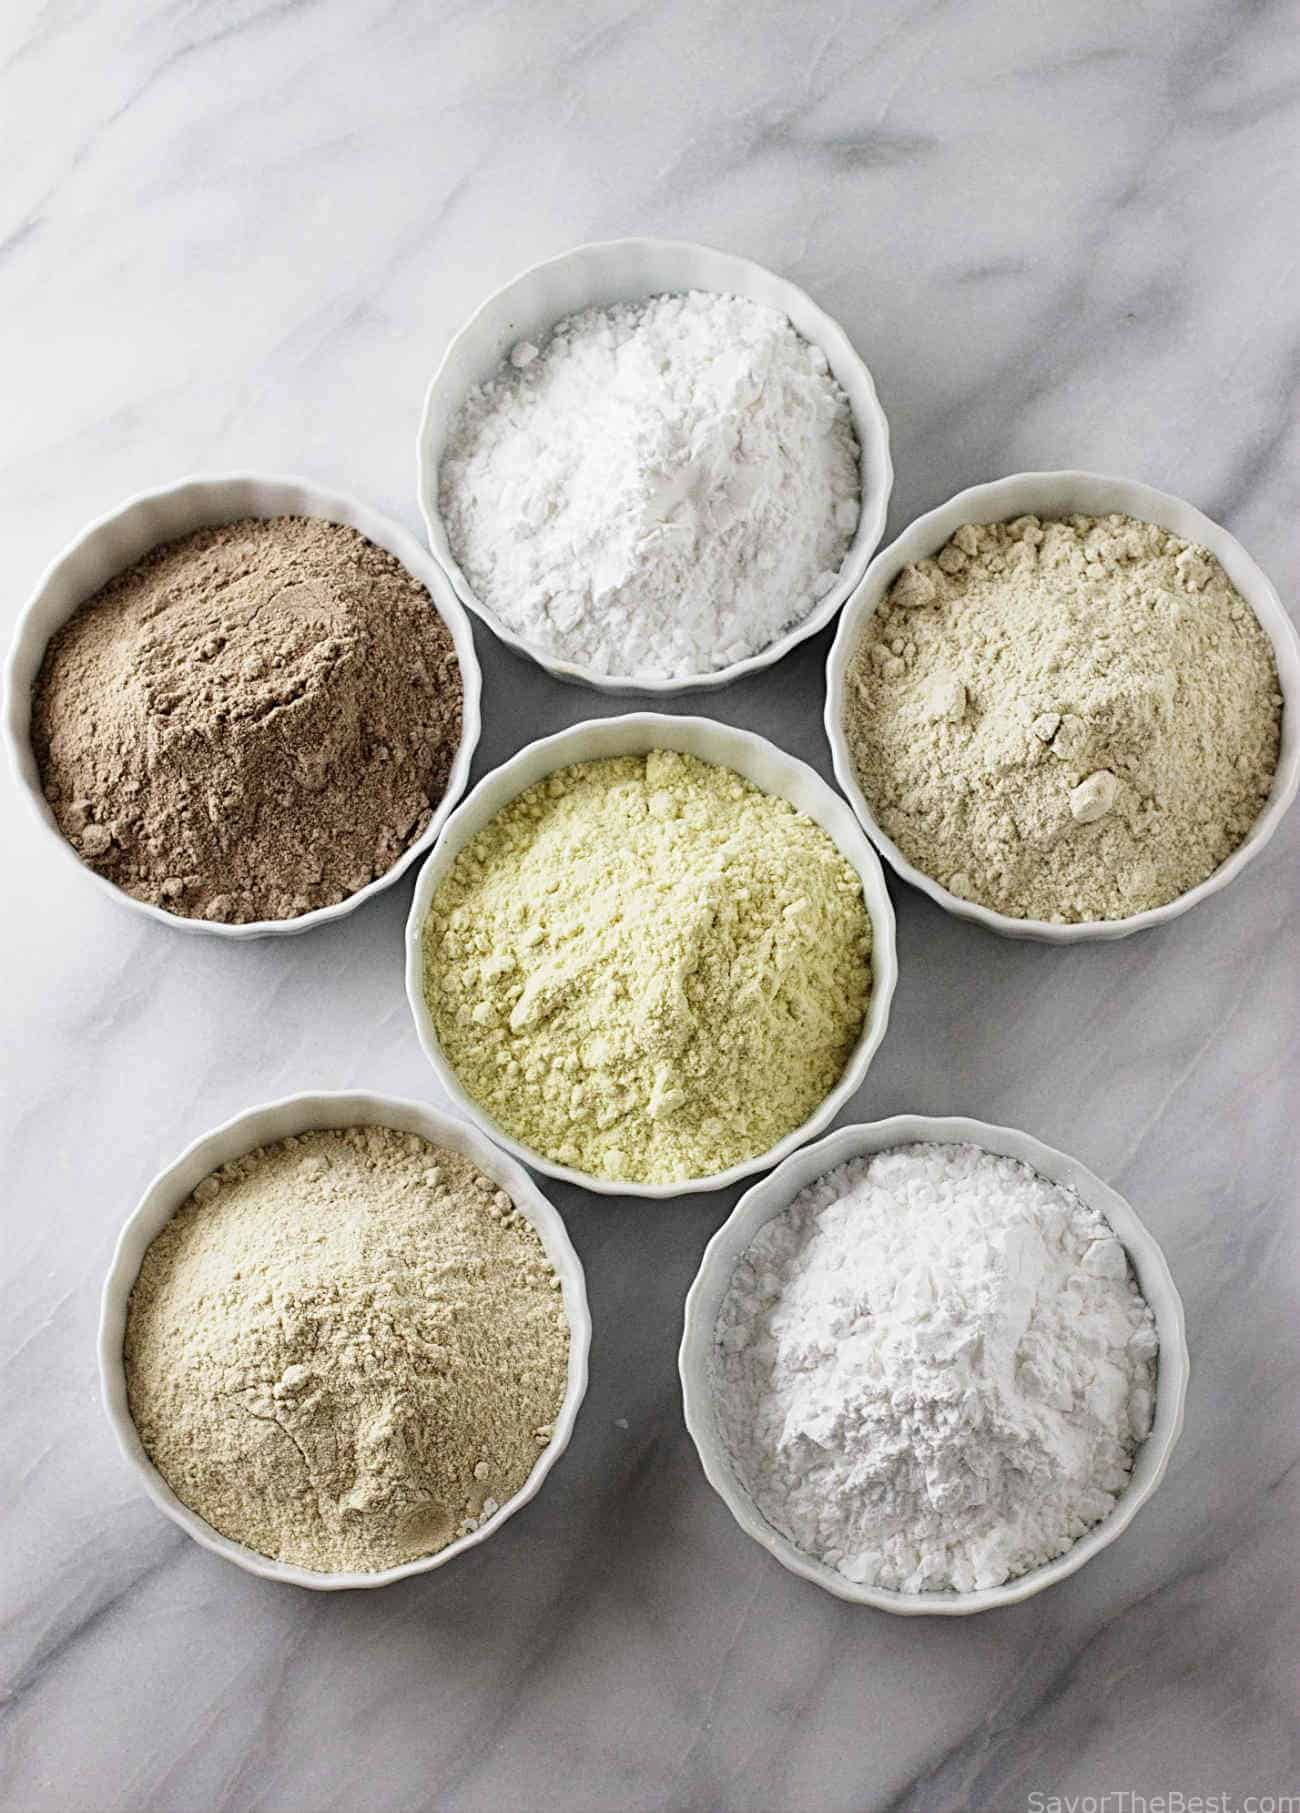 This flour blend can be used cup for cup as a replacement for all-purpose wheat flour or whole wheat flour. It is corn free, peanut free, tree nut free, rice free and dairy free. Gluten free ancient grains provide exceptional nutrition, a high fiber content and a wonderful flavor and texture to your baked goods.